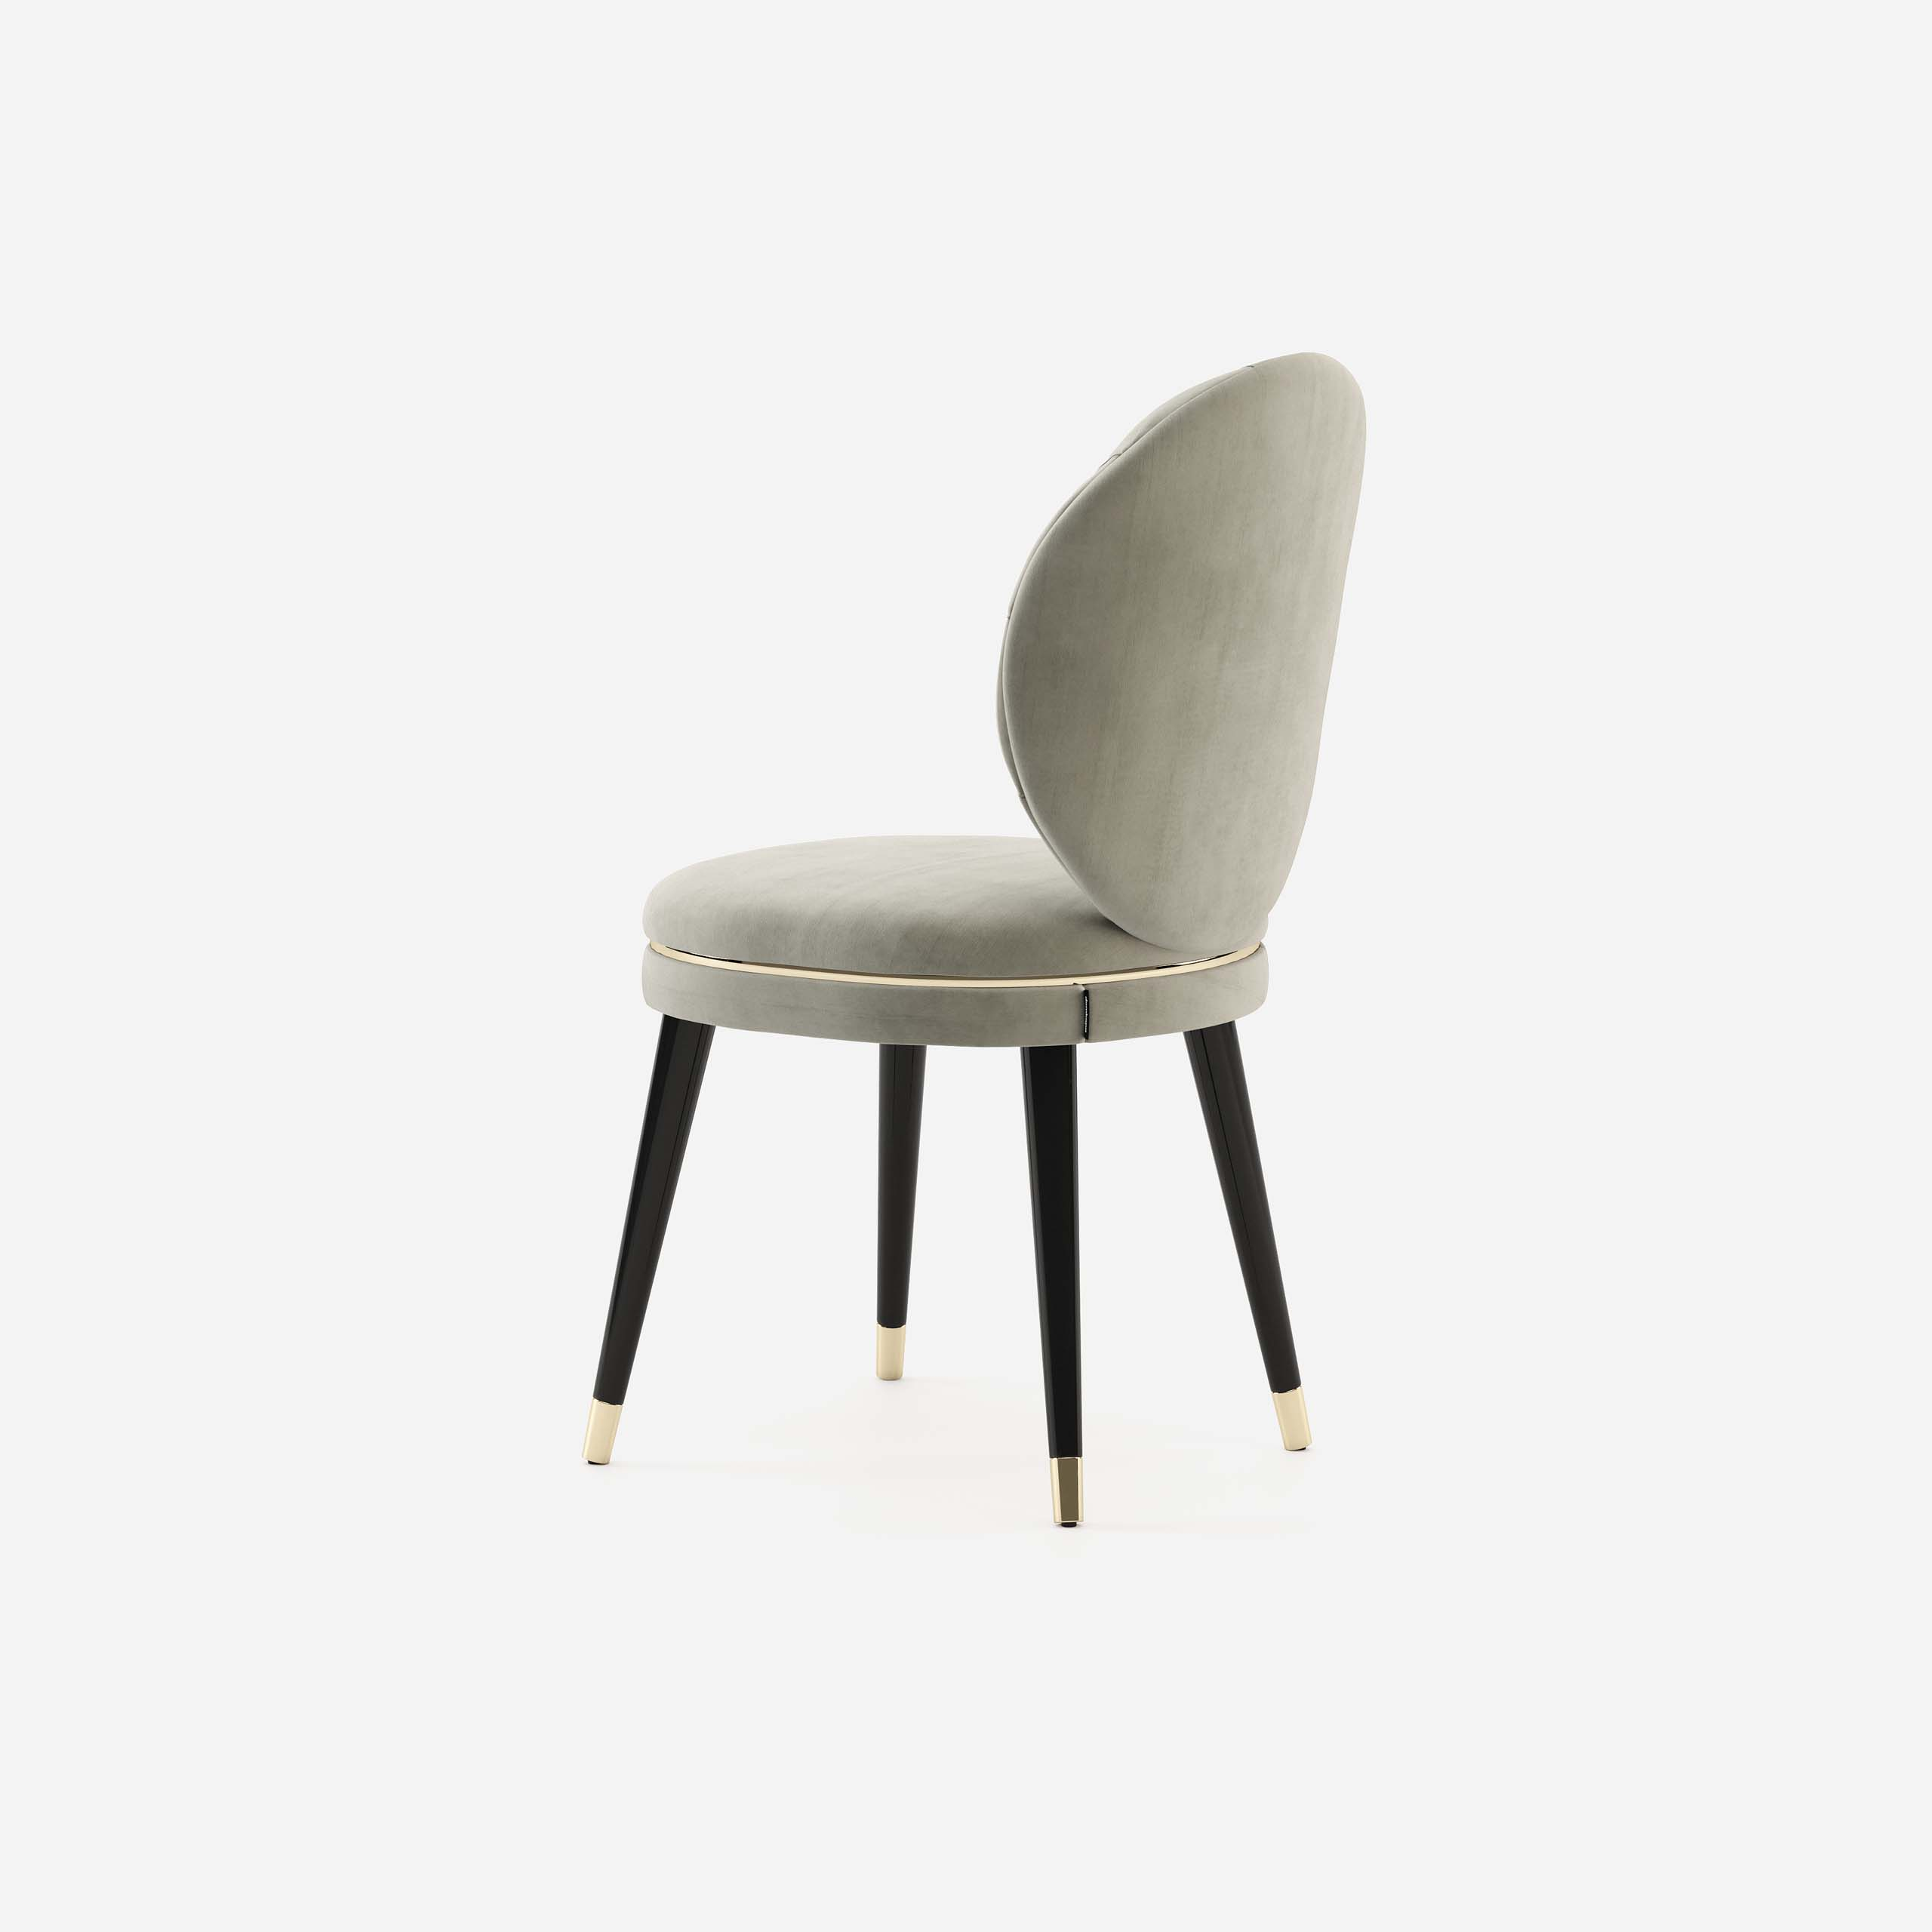 Katy Chair By Domkapa Chairs Design Meets Comfort